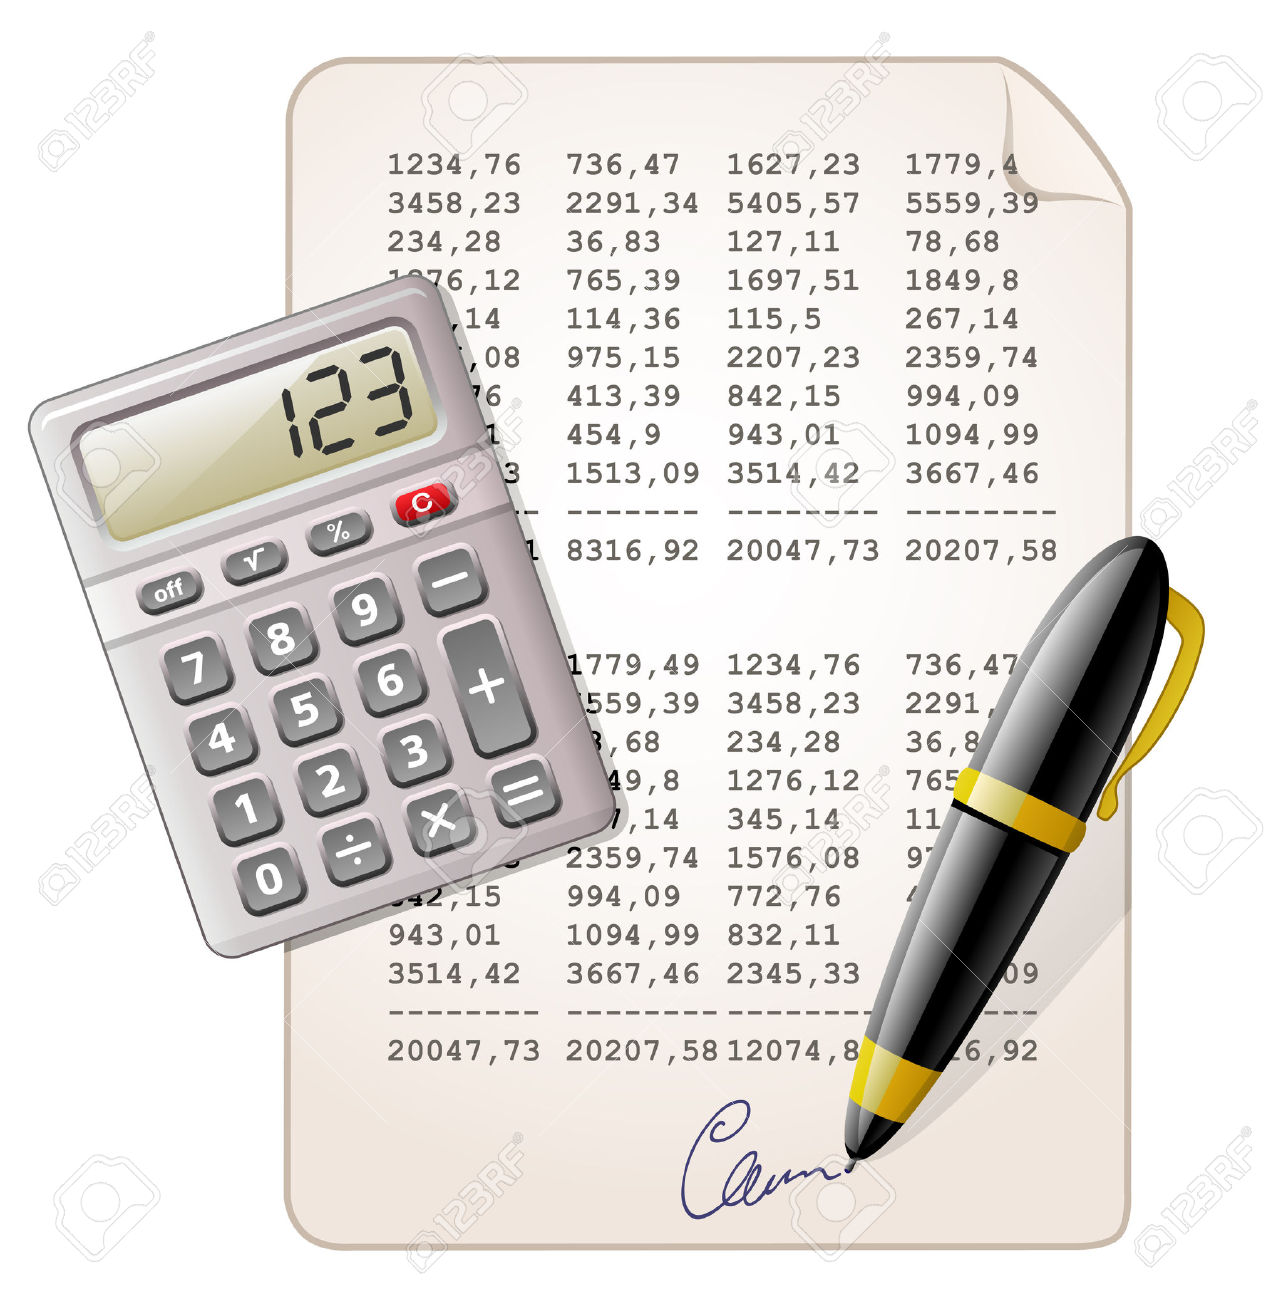 Free Cliparts Accounting Machines Download Free Clip Art